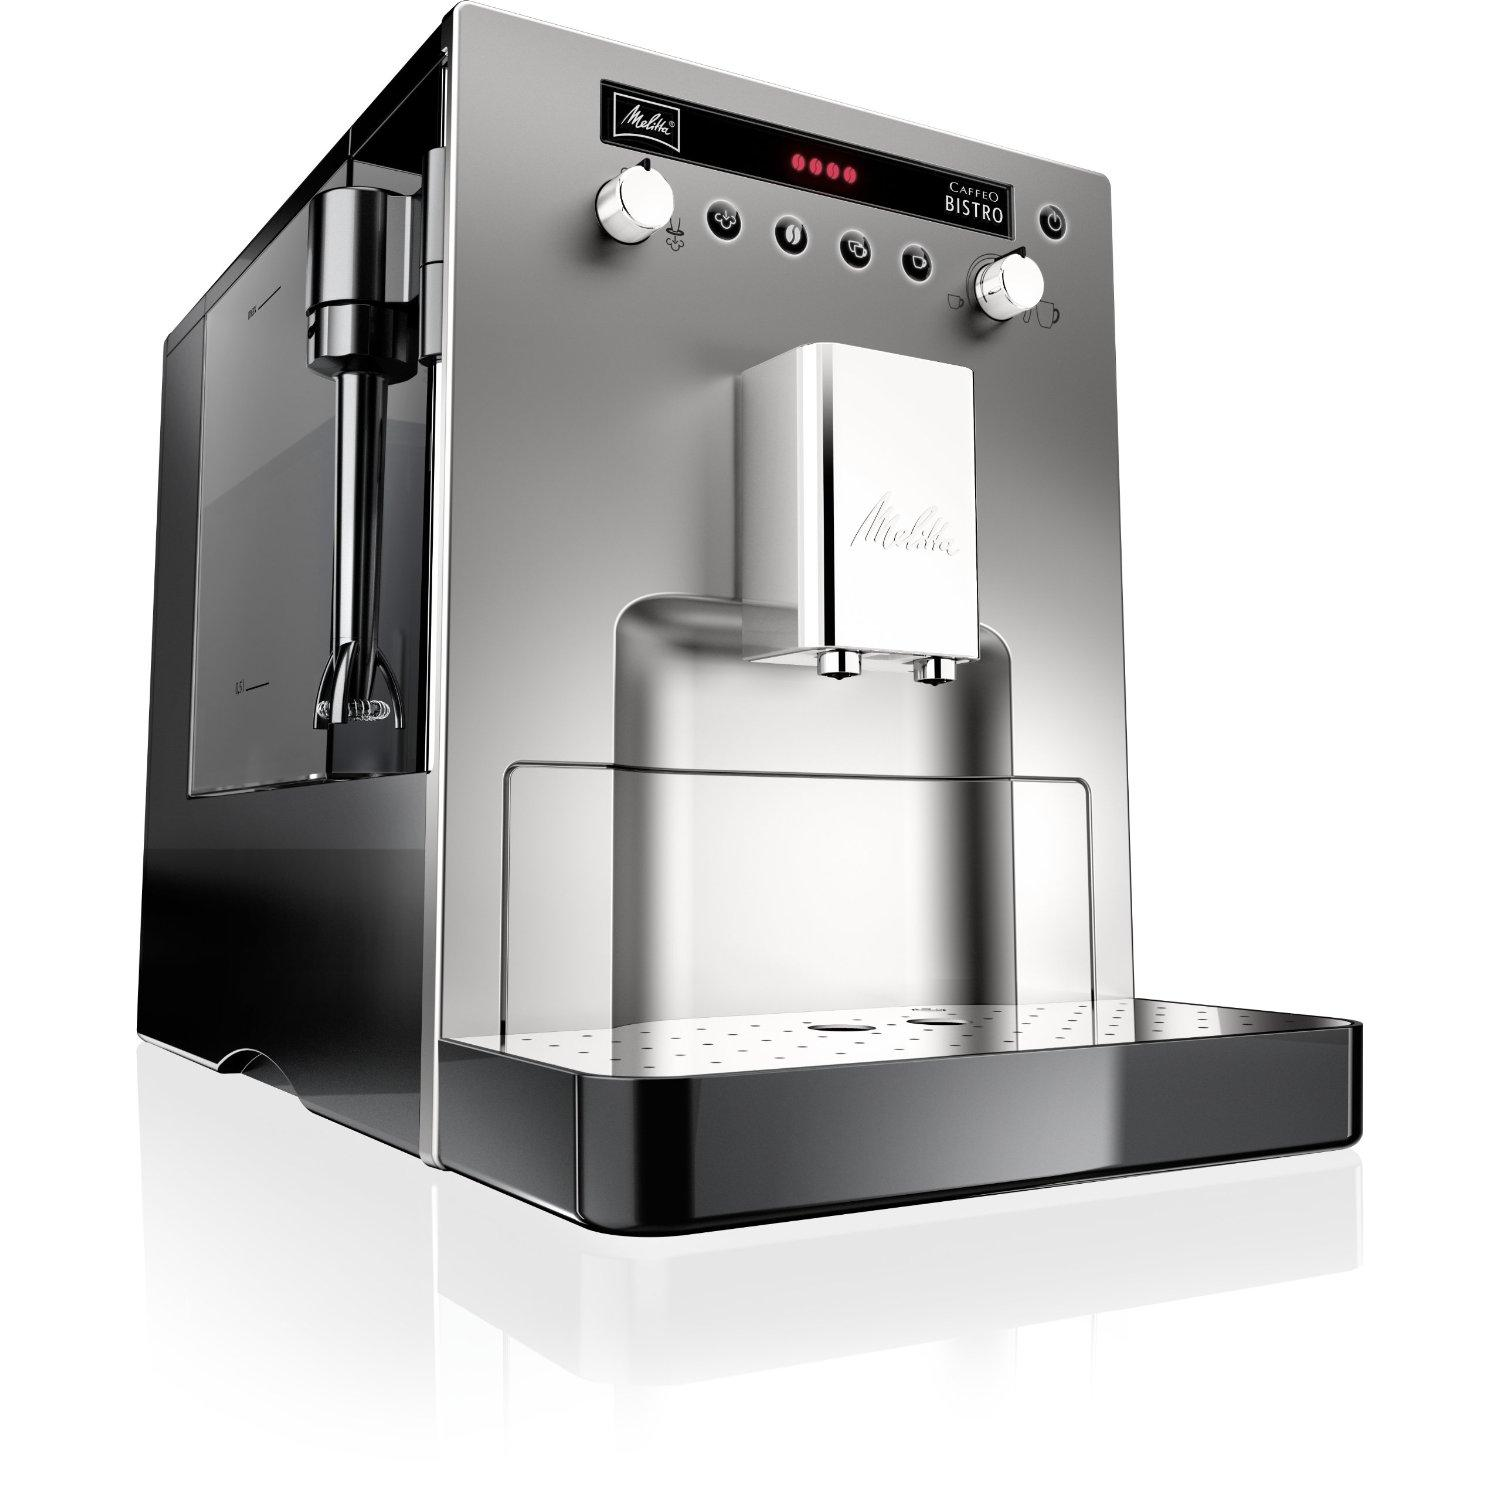 Machine A Cafe Melitta Caffeo Bistro